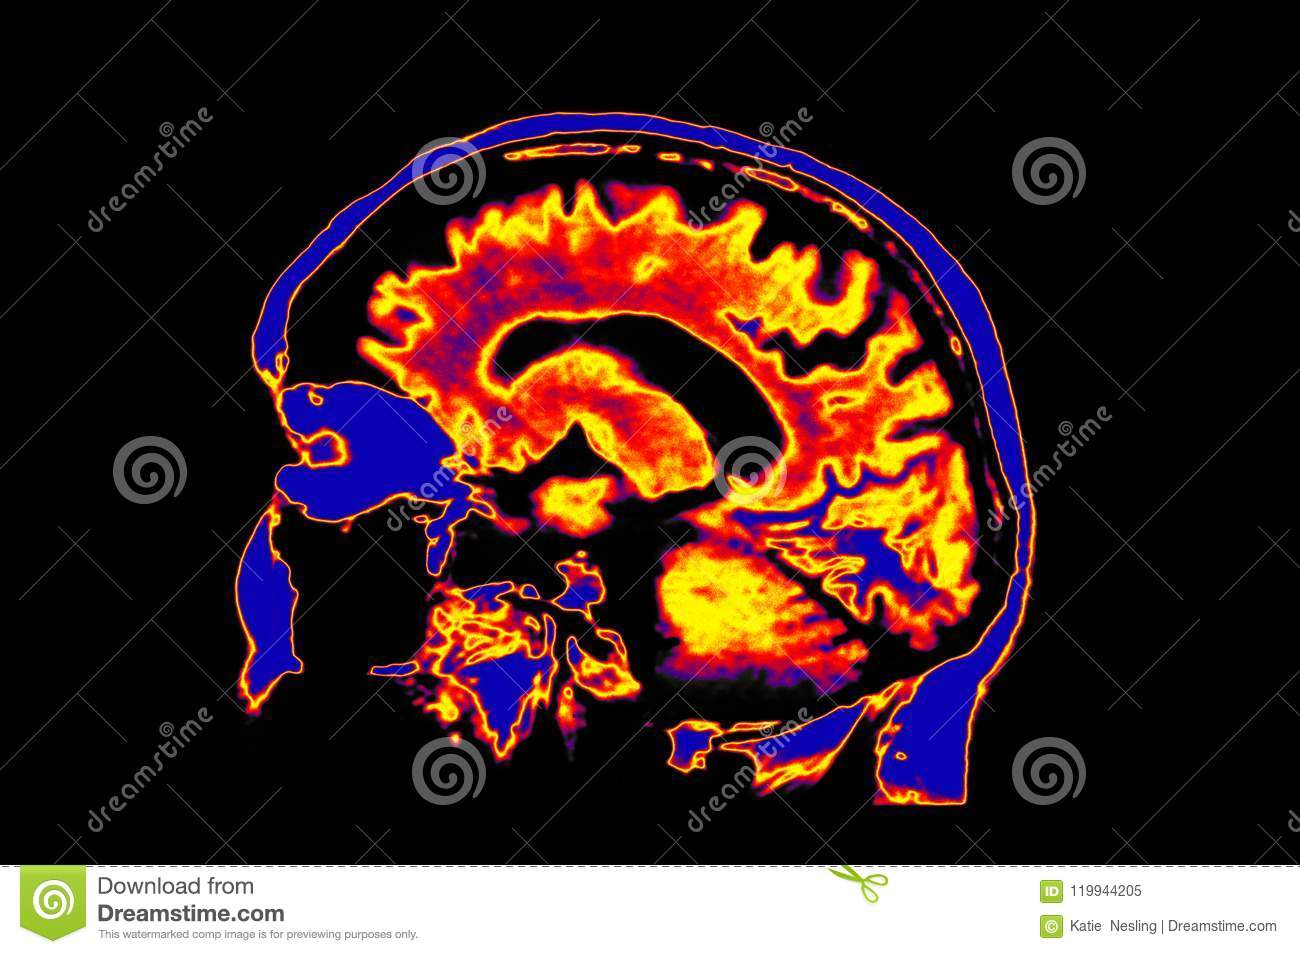 Colorized MRI Image Of Head Showing Brain Stock Image - Image of ...